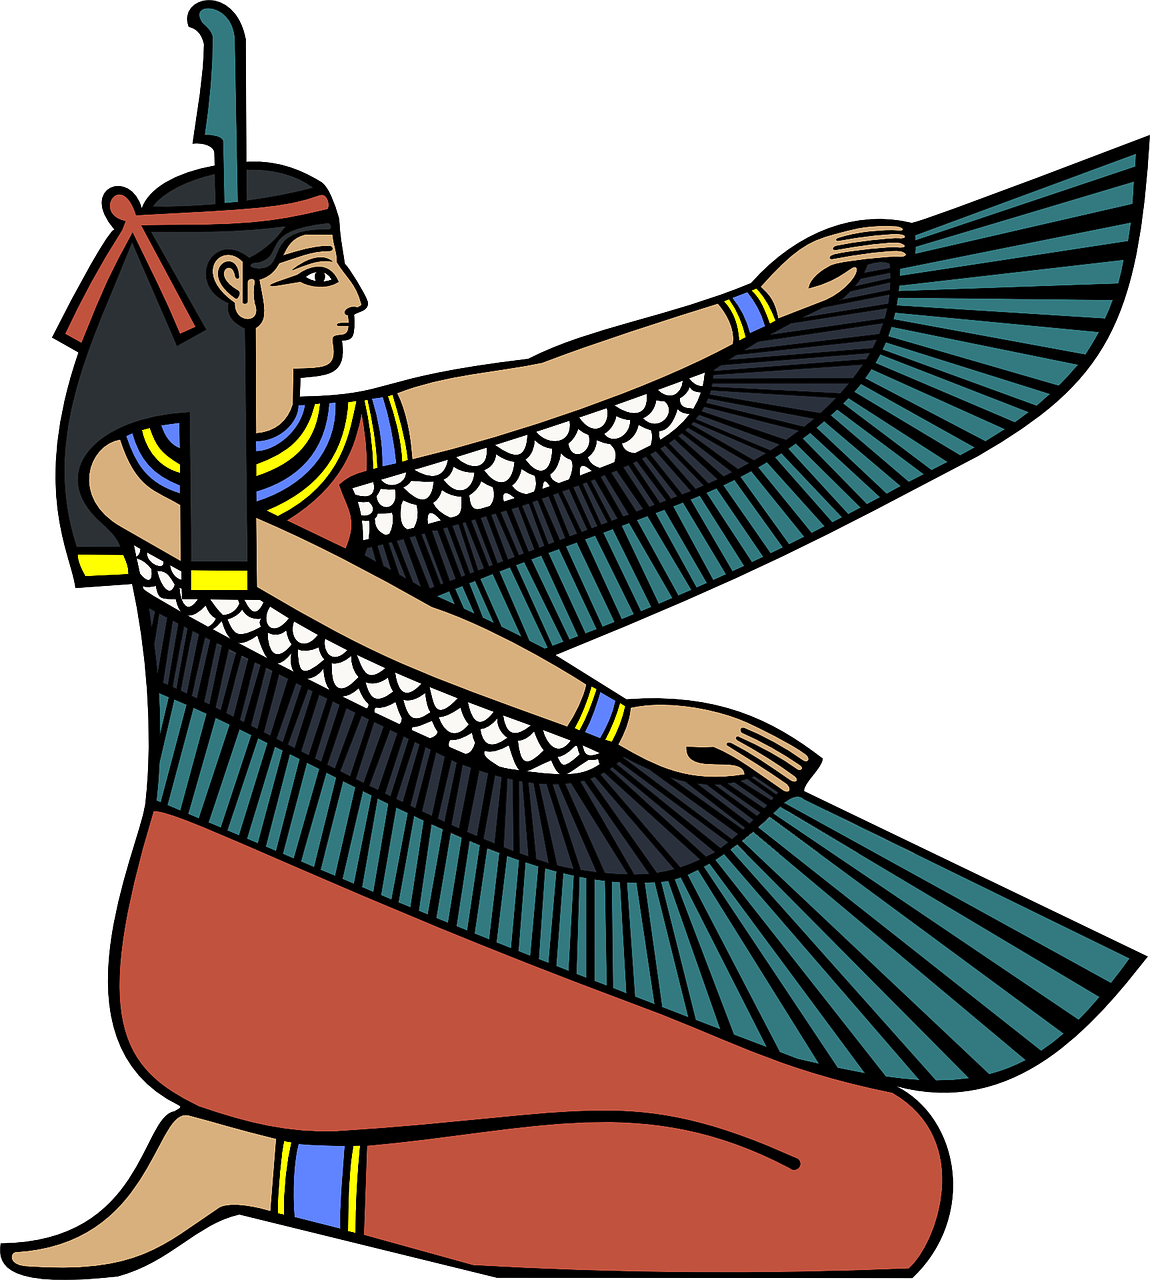 egyptian,goddess,ancient,queen,cultures,cultural,belief,myths,history,historical,characters,mythology,free vector graphics,free pictures, free photos, free images, royalty free, free illustrations, public domain